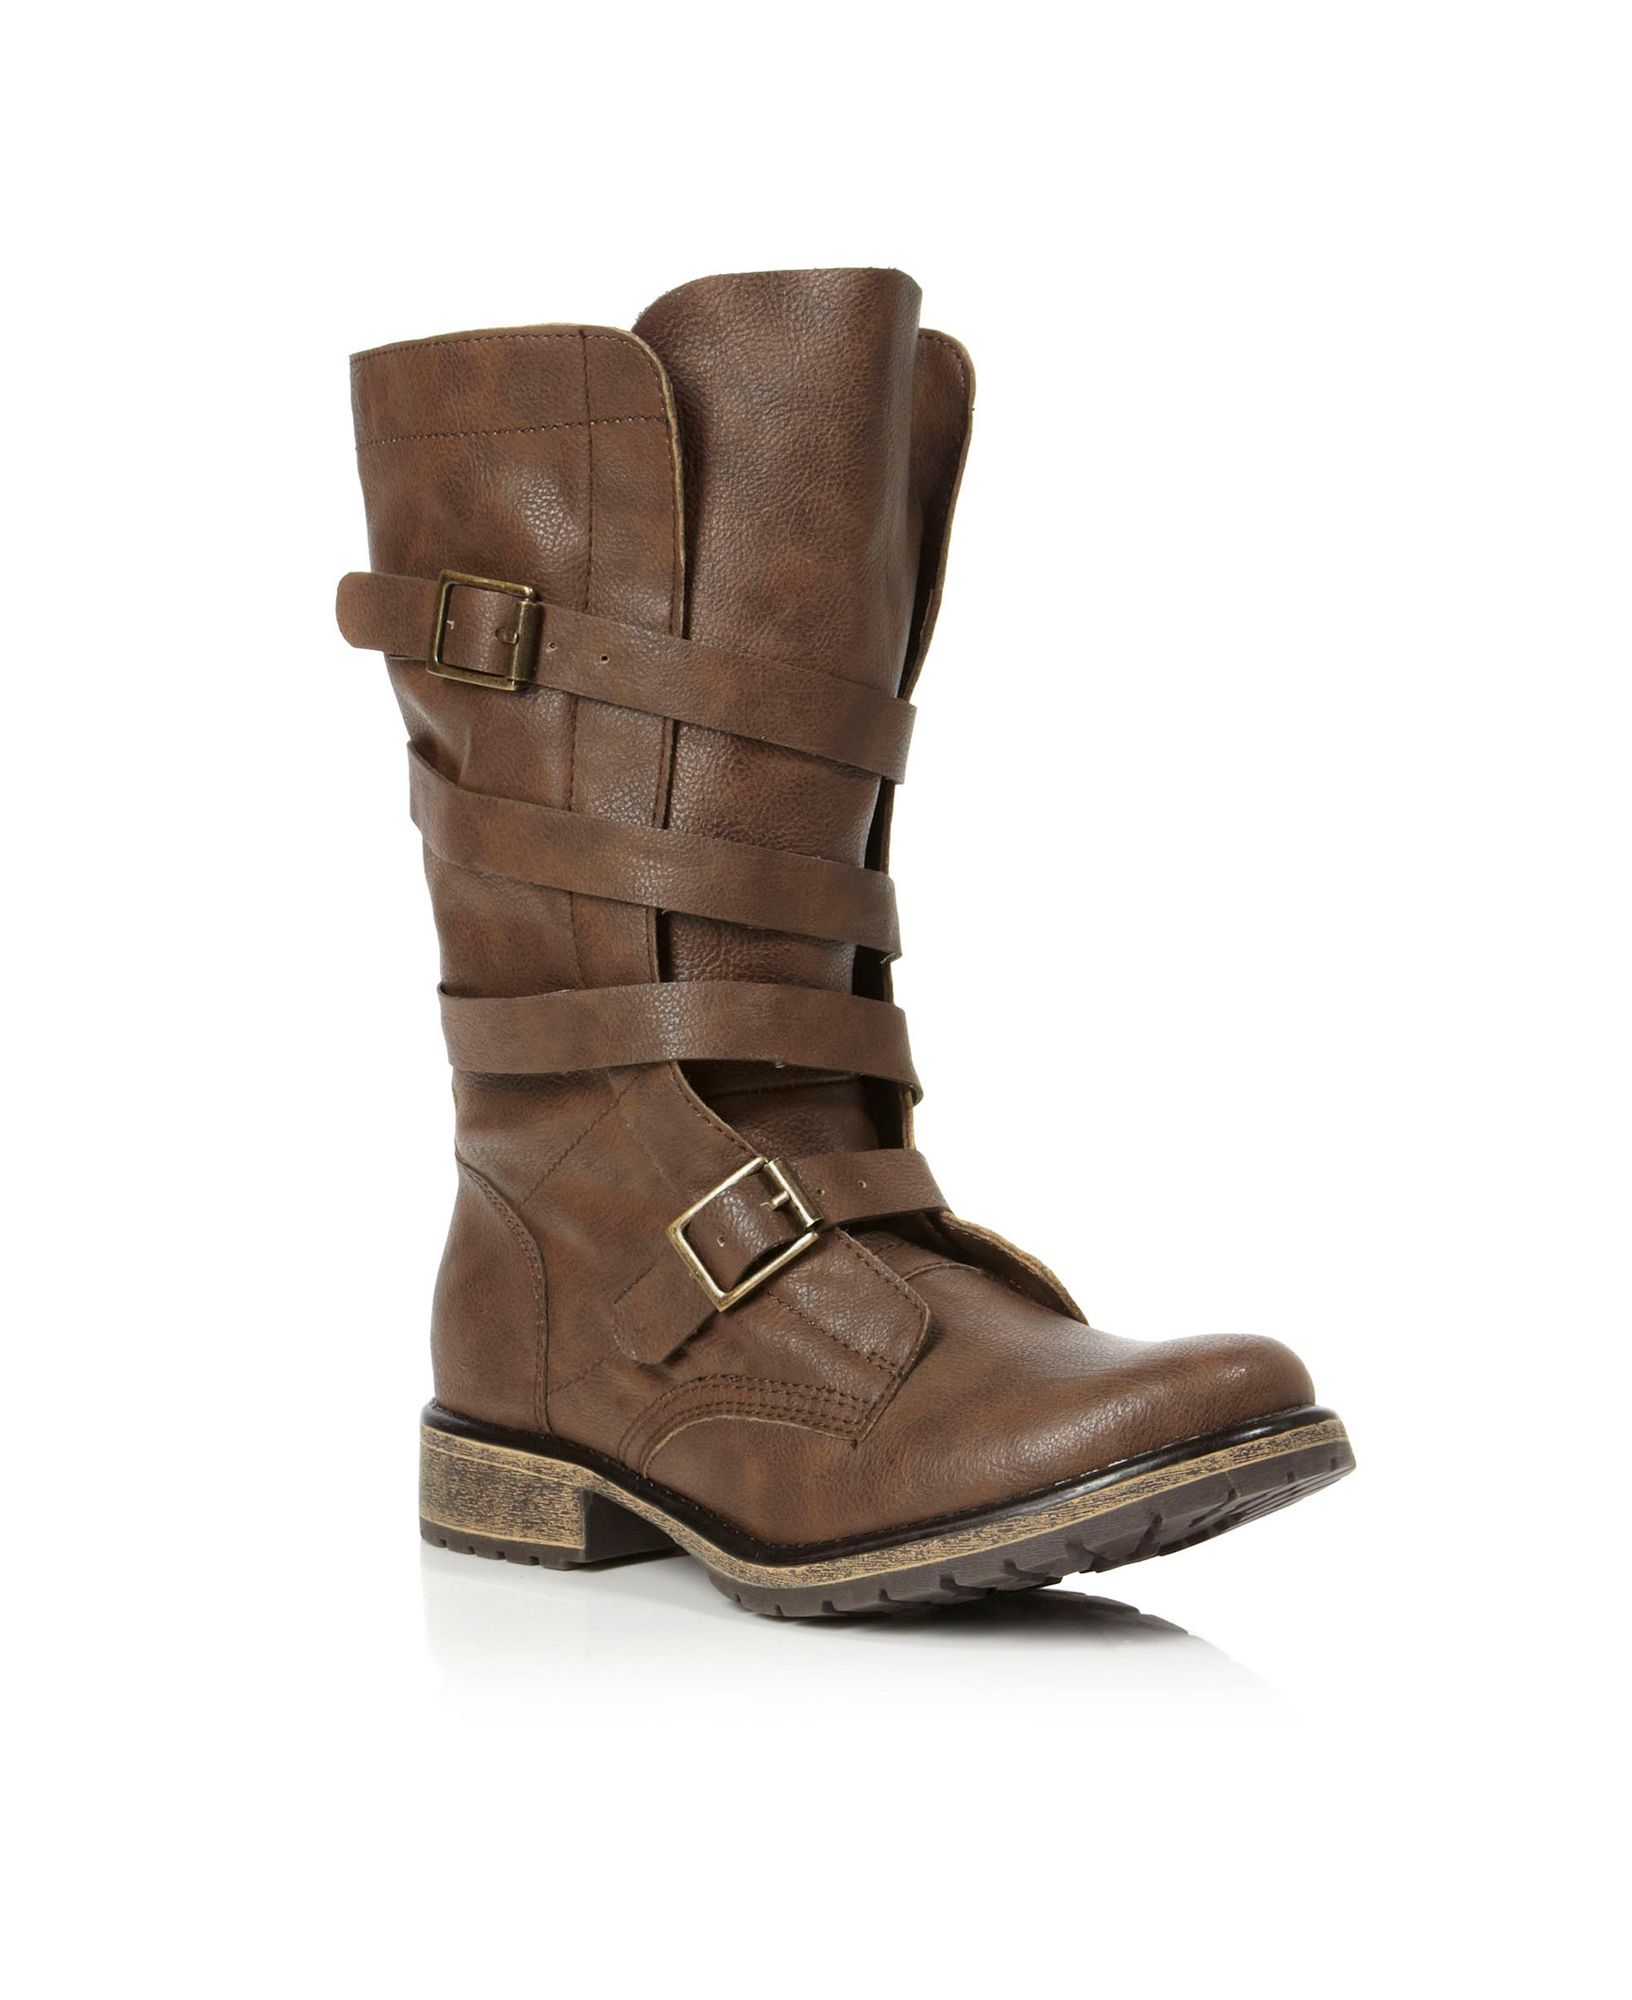 madden razcal mg buckle calf boots in brown lyst